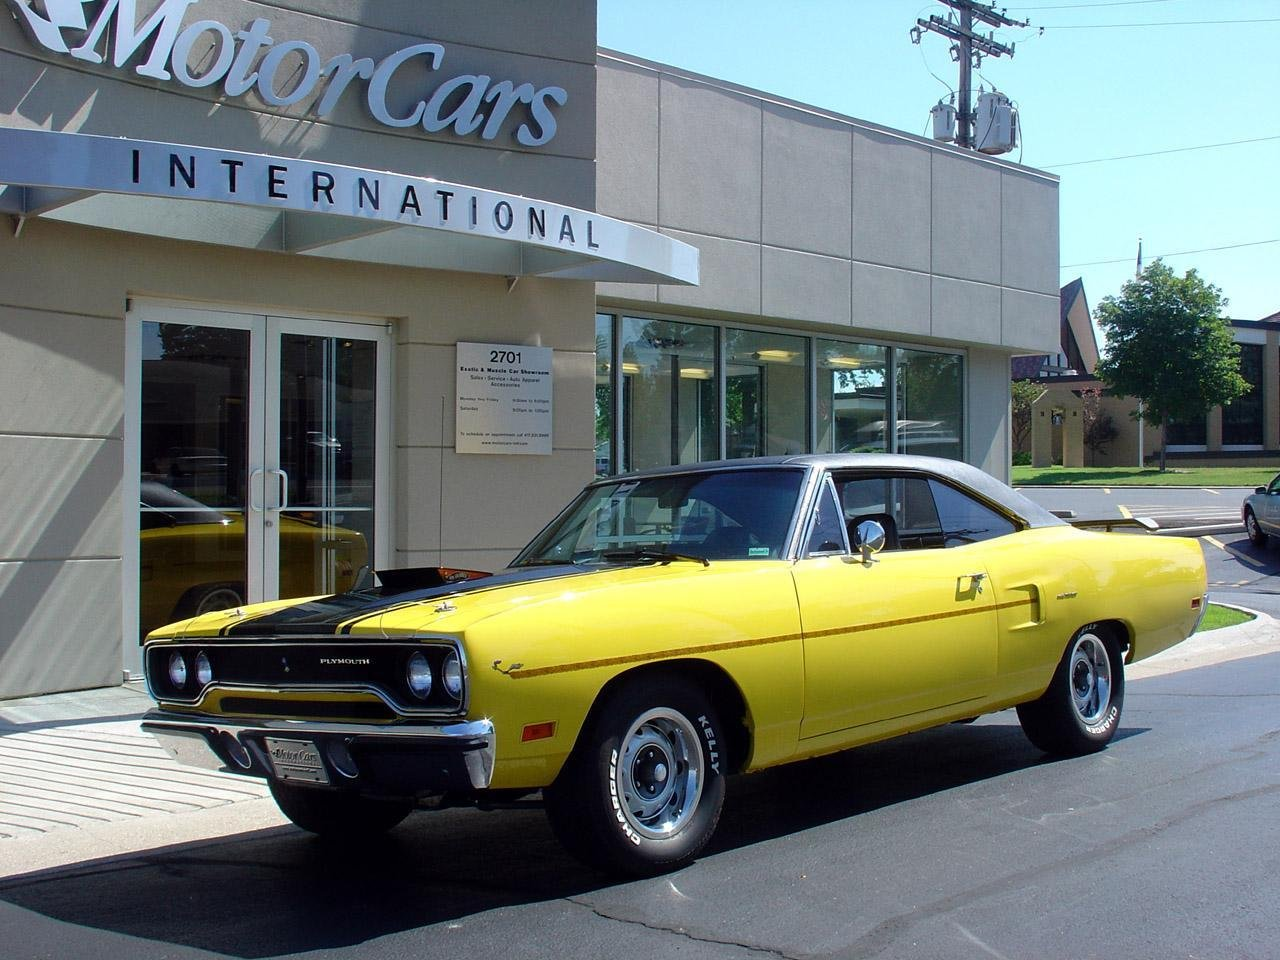 http://pictures.topspeed.com/IMG/crop/200702/1968-plymouth-road-runner-4_1280x0w.jpg